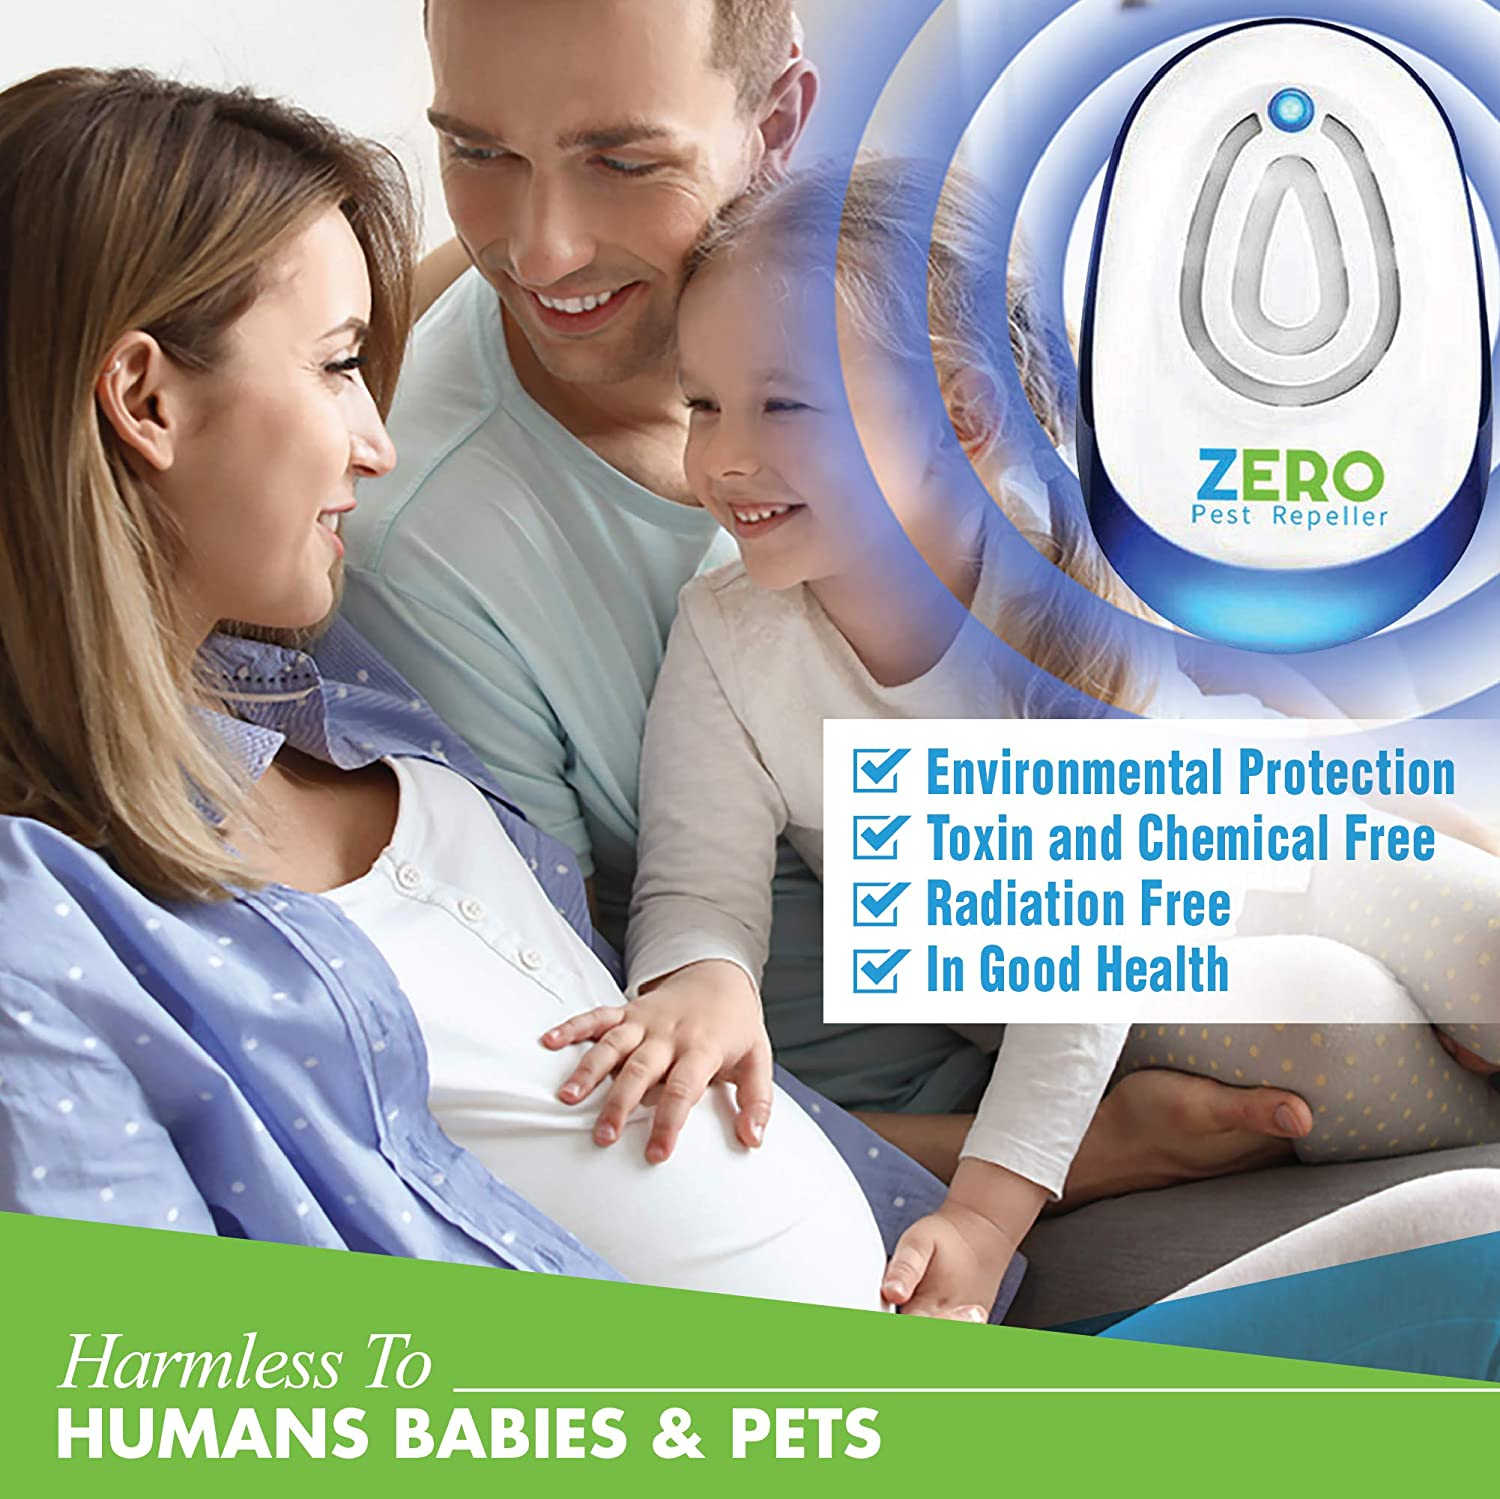 Zeropest Ultrasonic Pest Control Reject Devices Electronic Plug In Repellent Defender